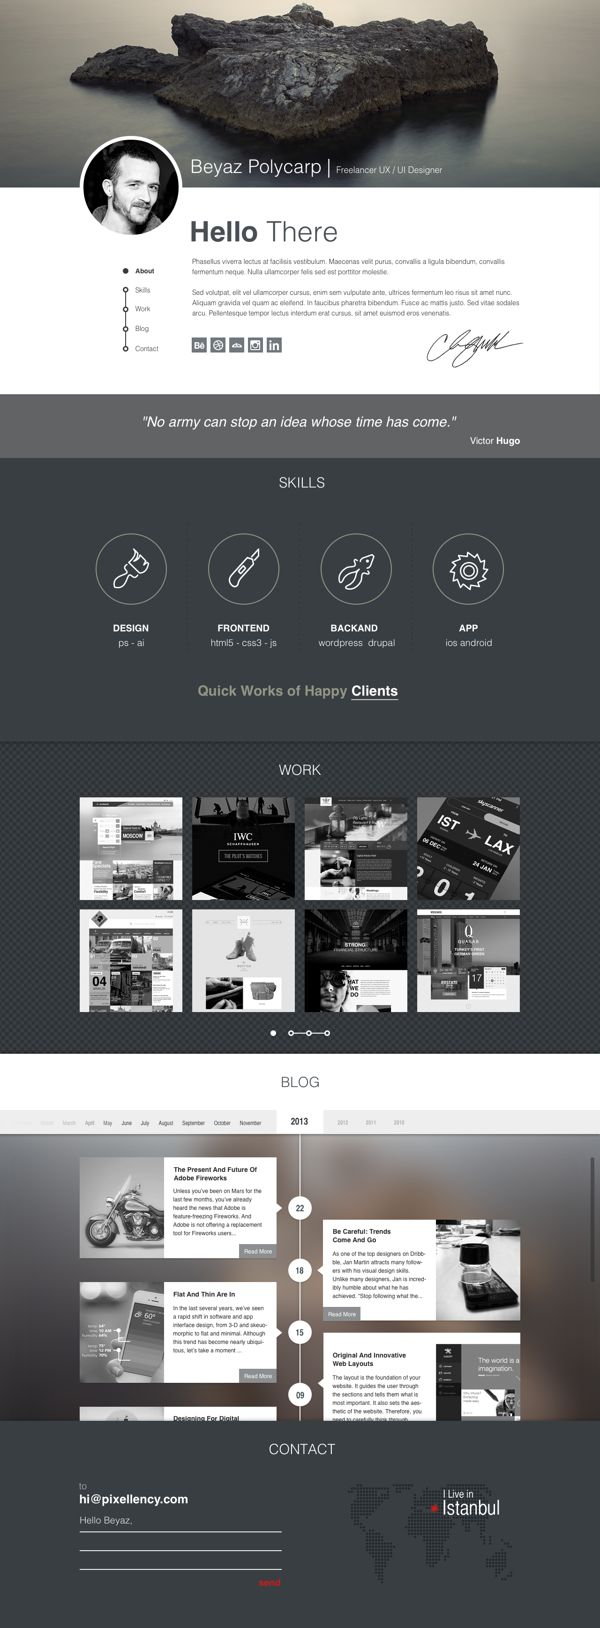 Polifoli | Free Psd PORTFOLIO TEMPLATE by Beyaz Polycarp, via Behance